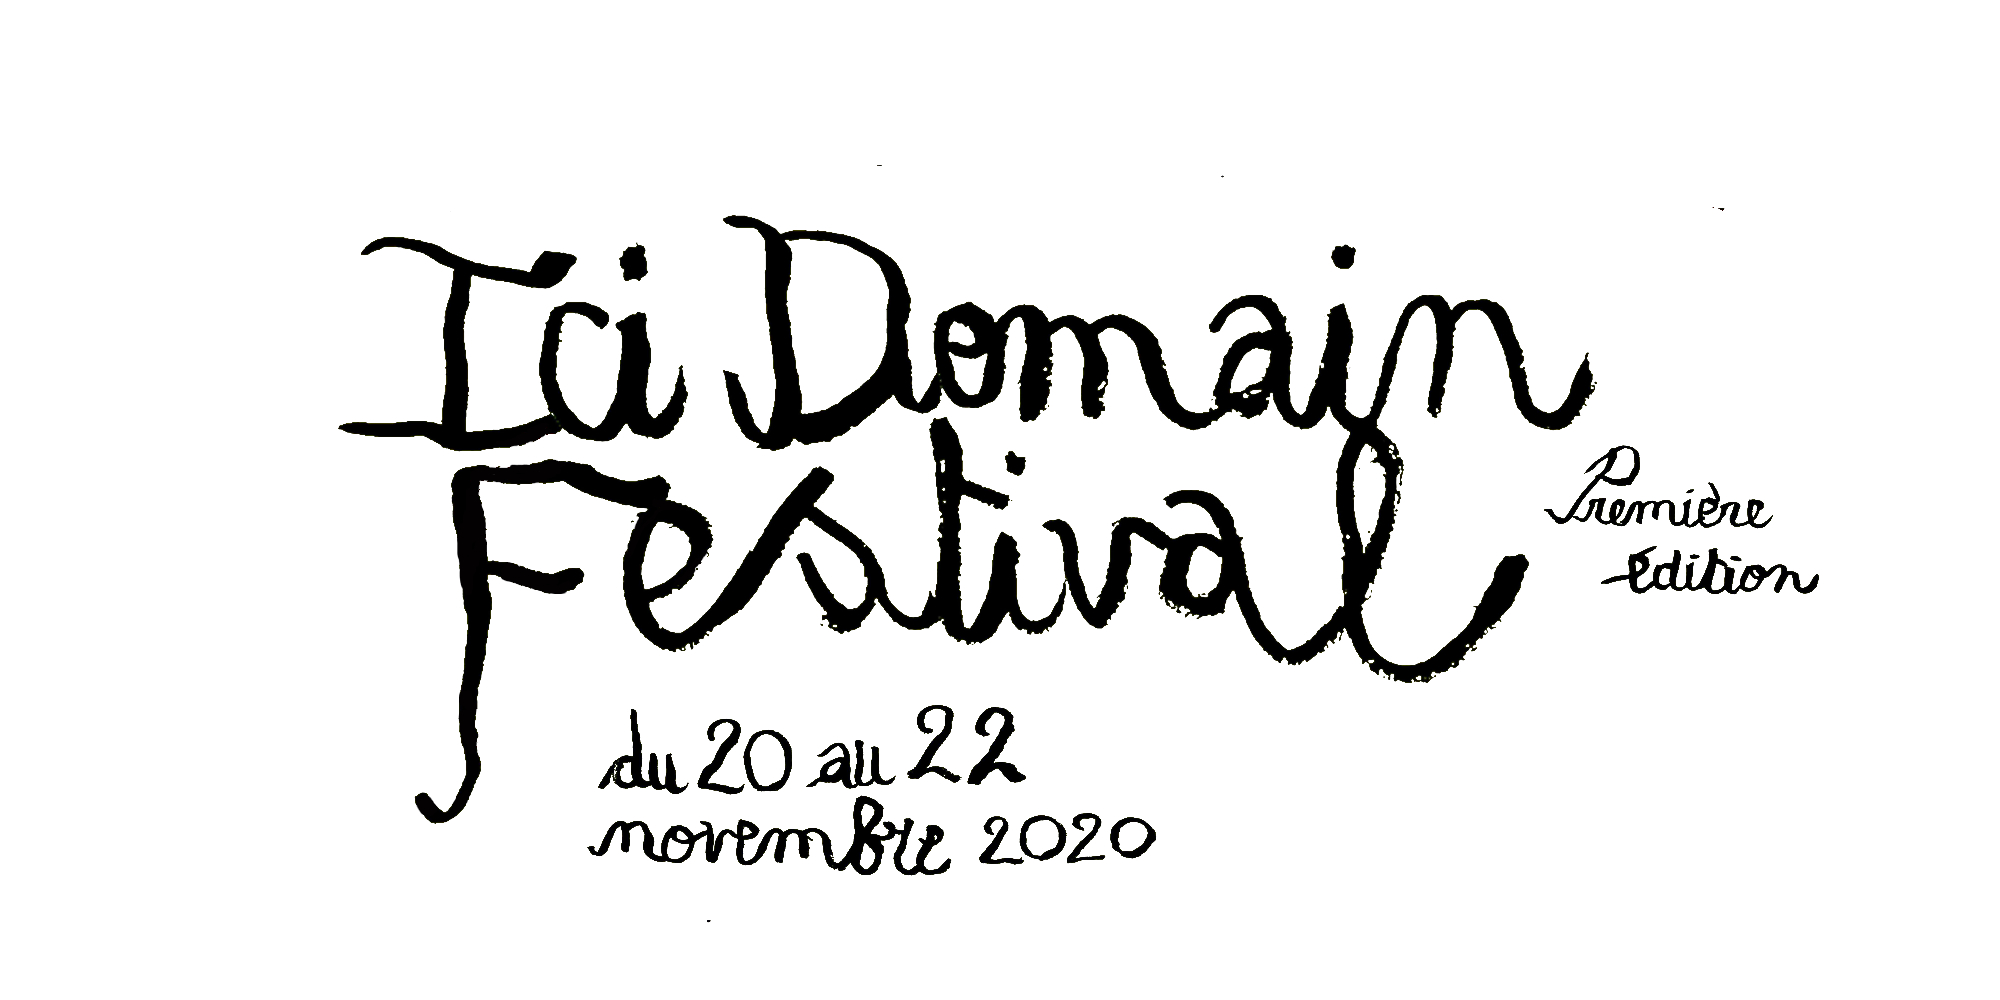 festival ici demain fgo-barbara paris edition digitale